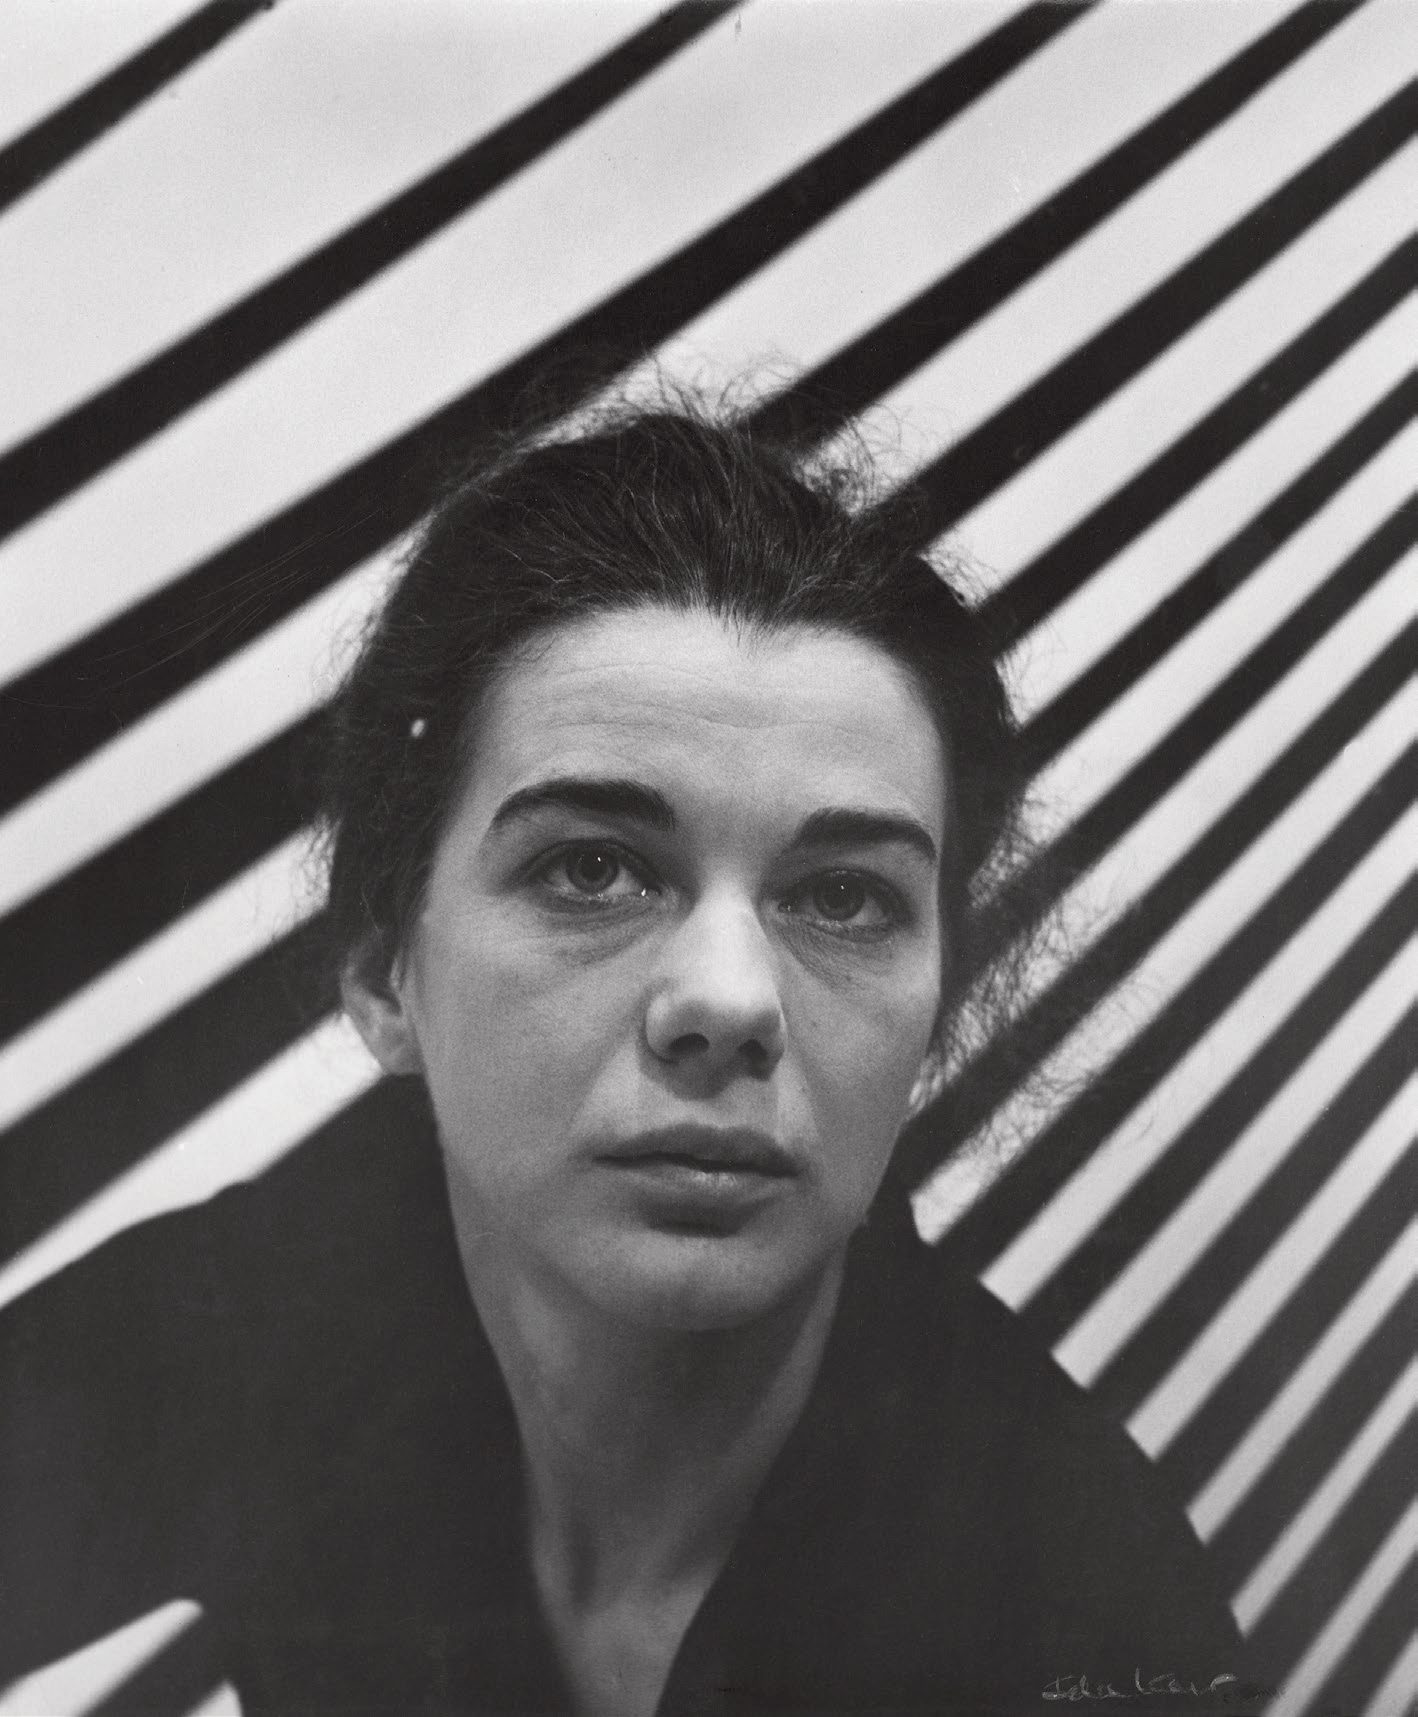 Bridget Riley, 1963, photo by Ida Kar. Image from the book Bridget Riley A Very Very Person.